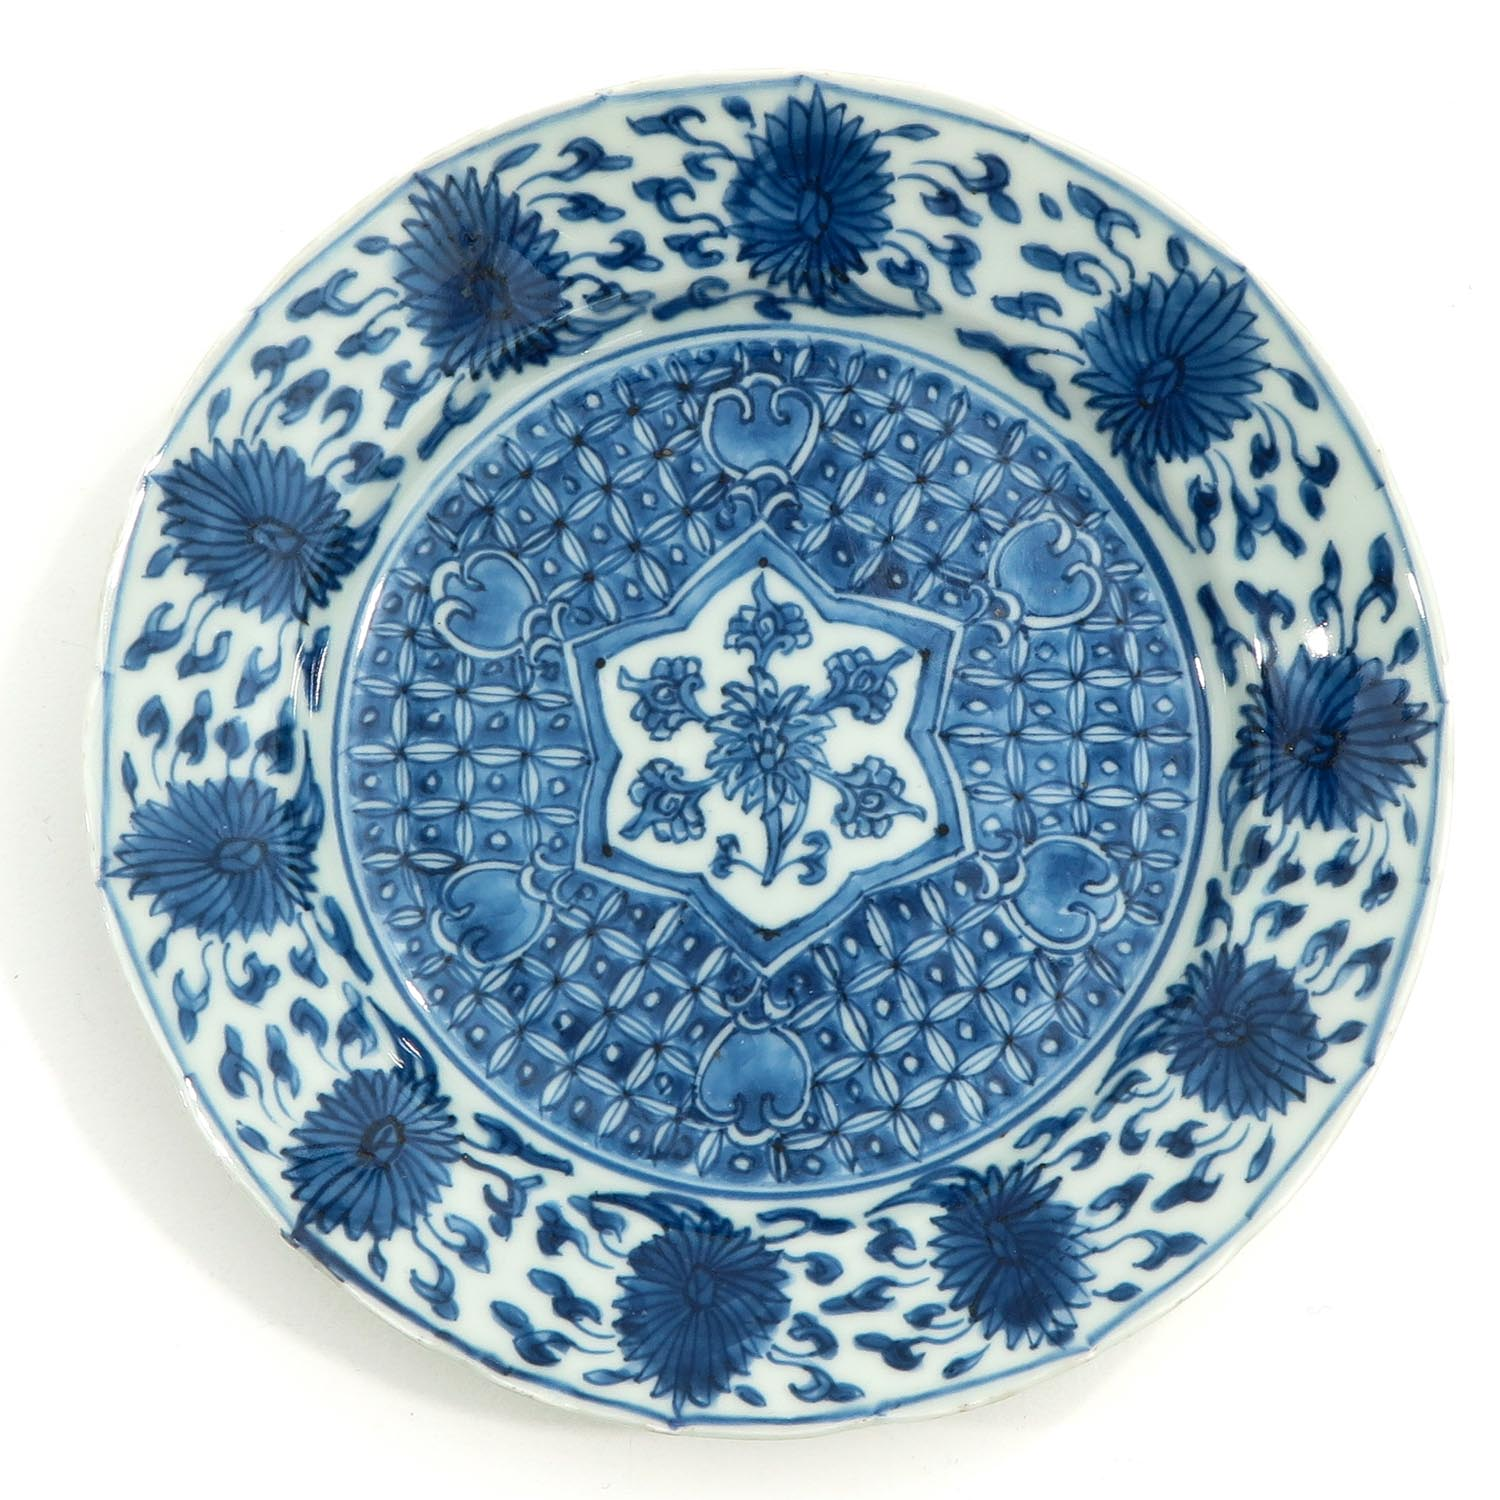 A Lot of 2 Blue and White Plates - Image 5 of 10